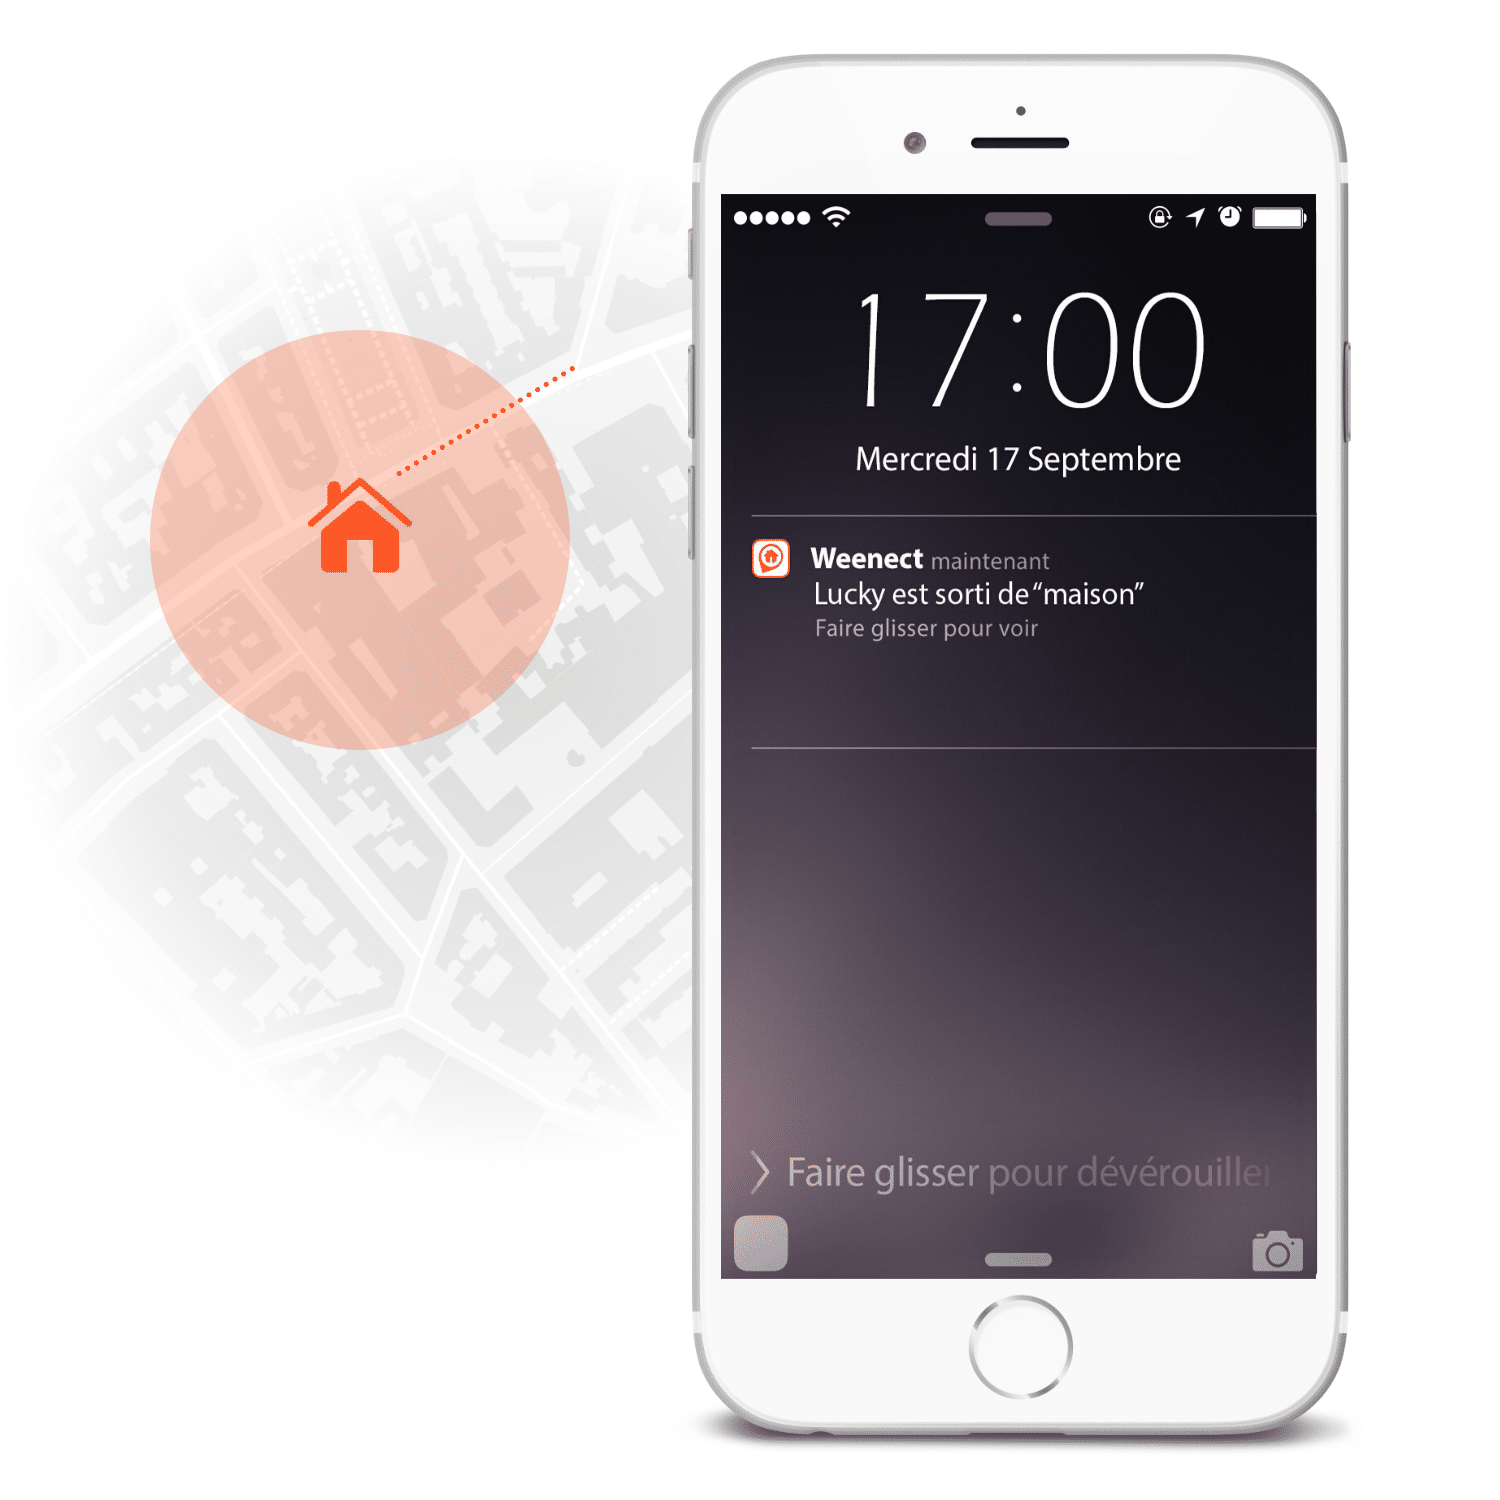 Feature Geofence Dogs